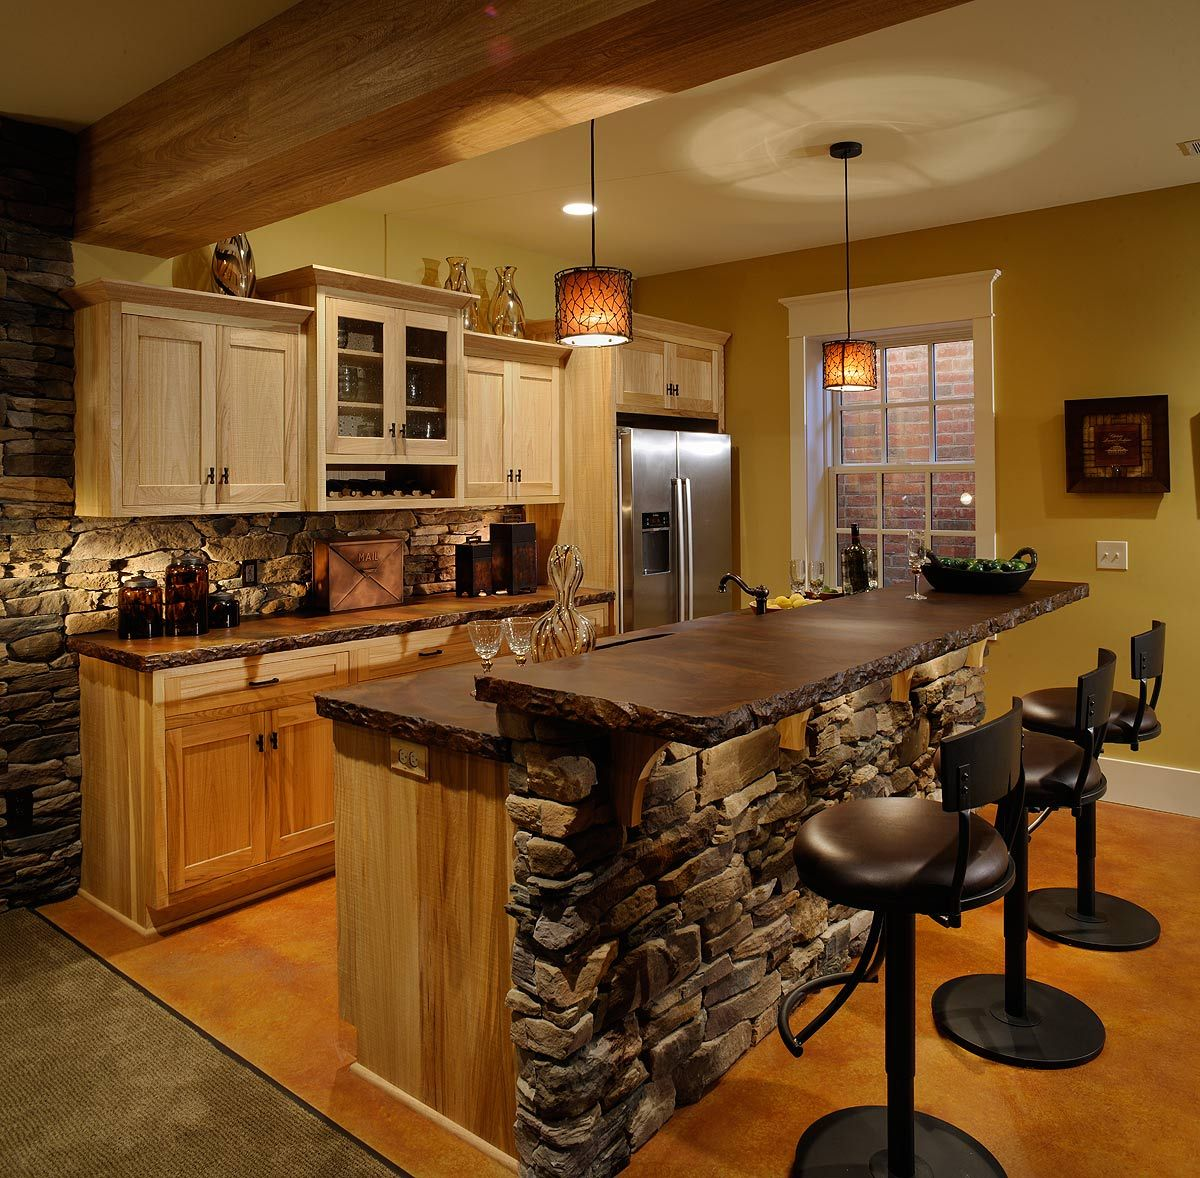 15 Rustic Kitchen Design Photos | Mullets, Ohio and Cabin